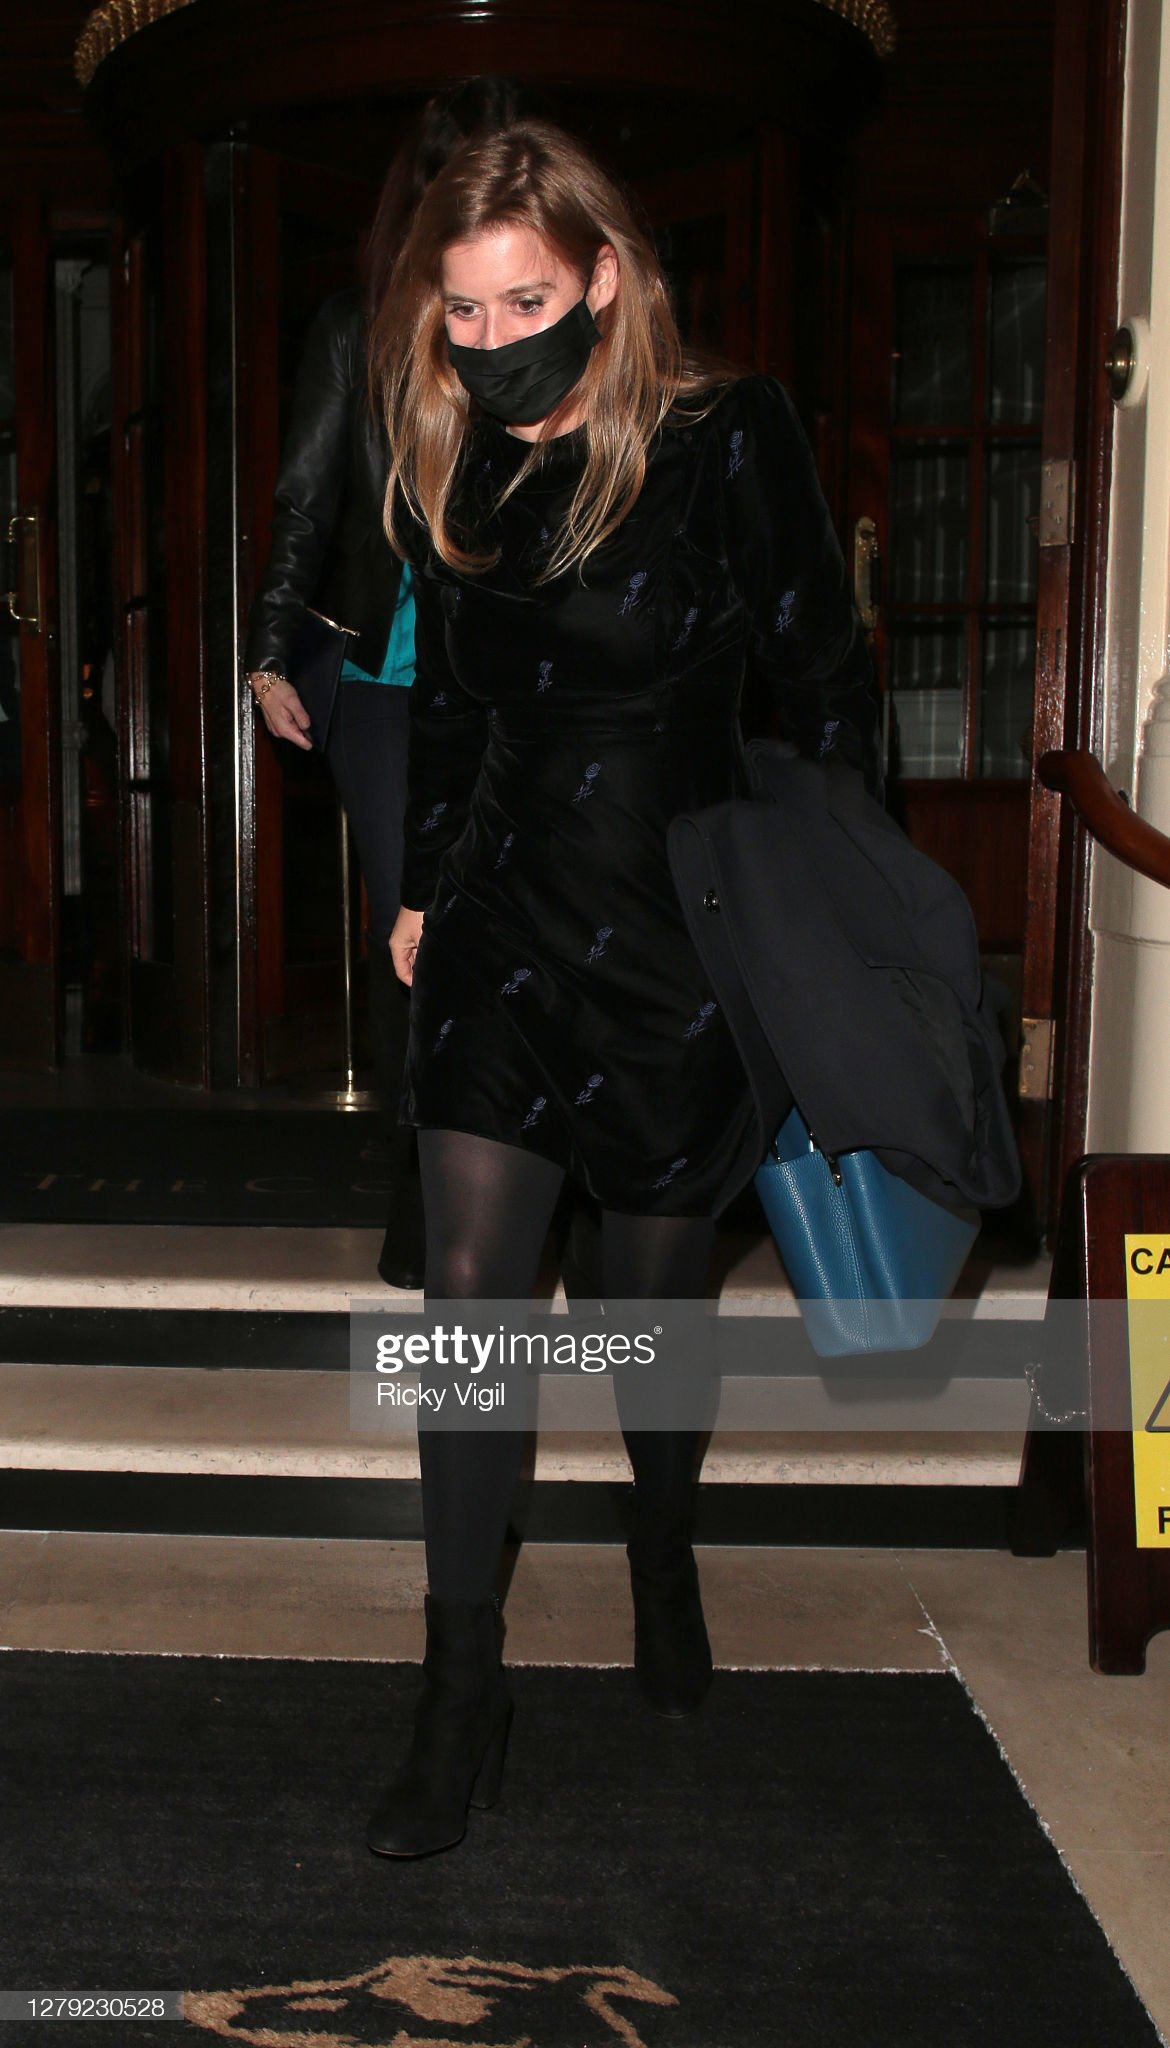 https://media.gettyimages.com/photos/princess-beatrice-seen-on-a-night-out-at-the-connaught-hotel-on-08-picture-id1279230528?s=2048x2048